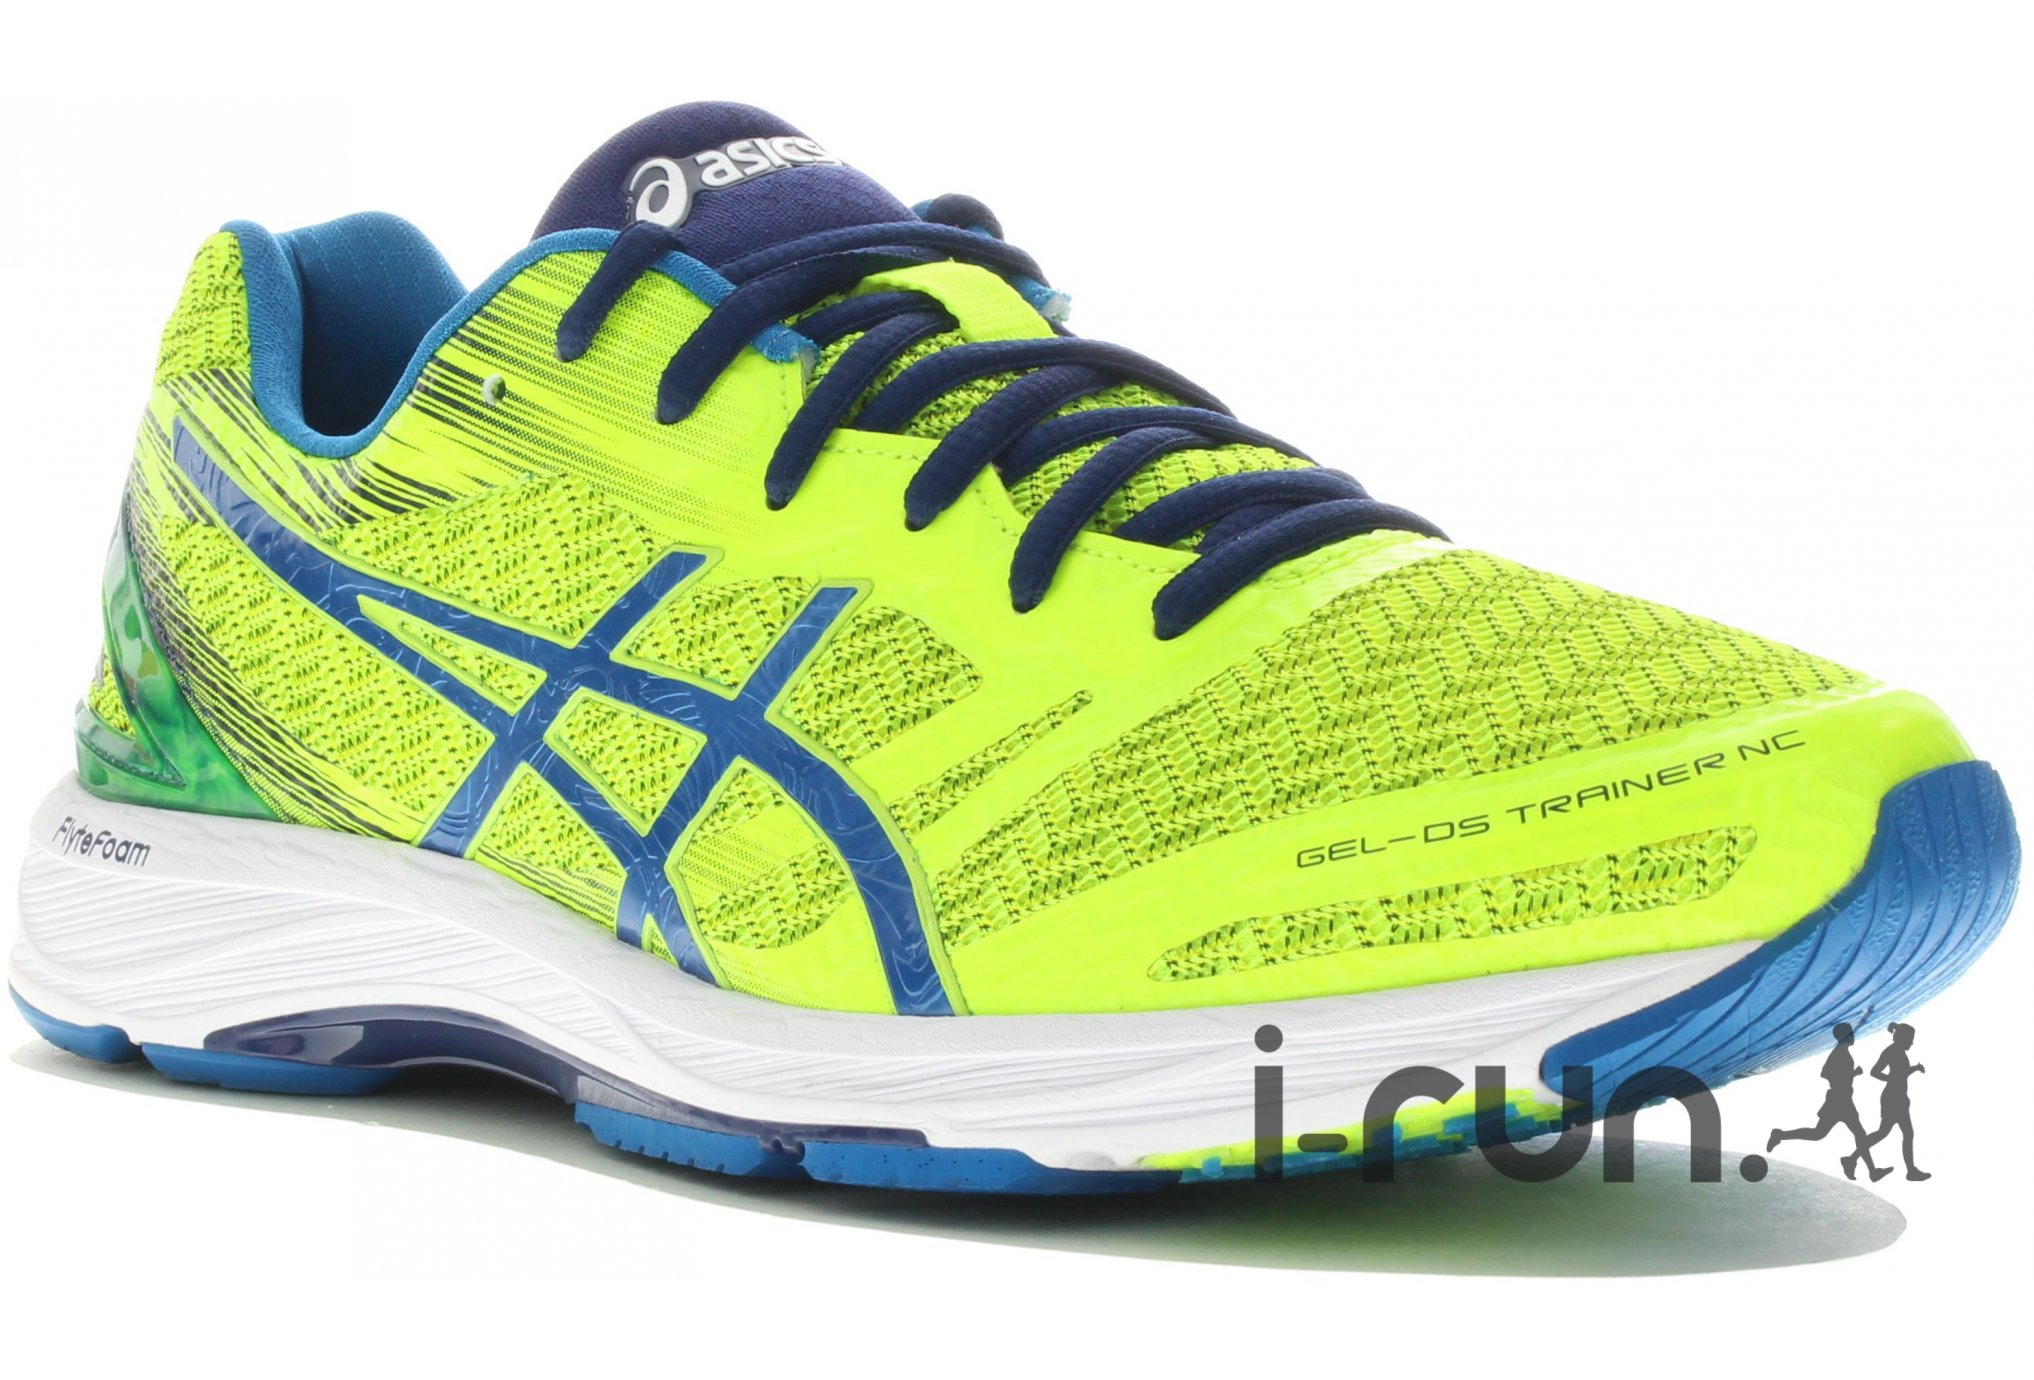 Asics Gel-Ds trainer 22 nc m chaussures homme